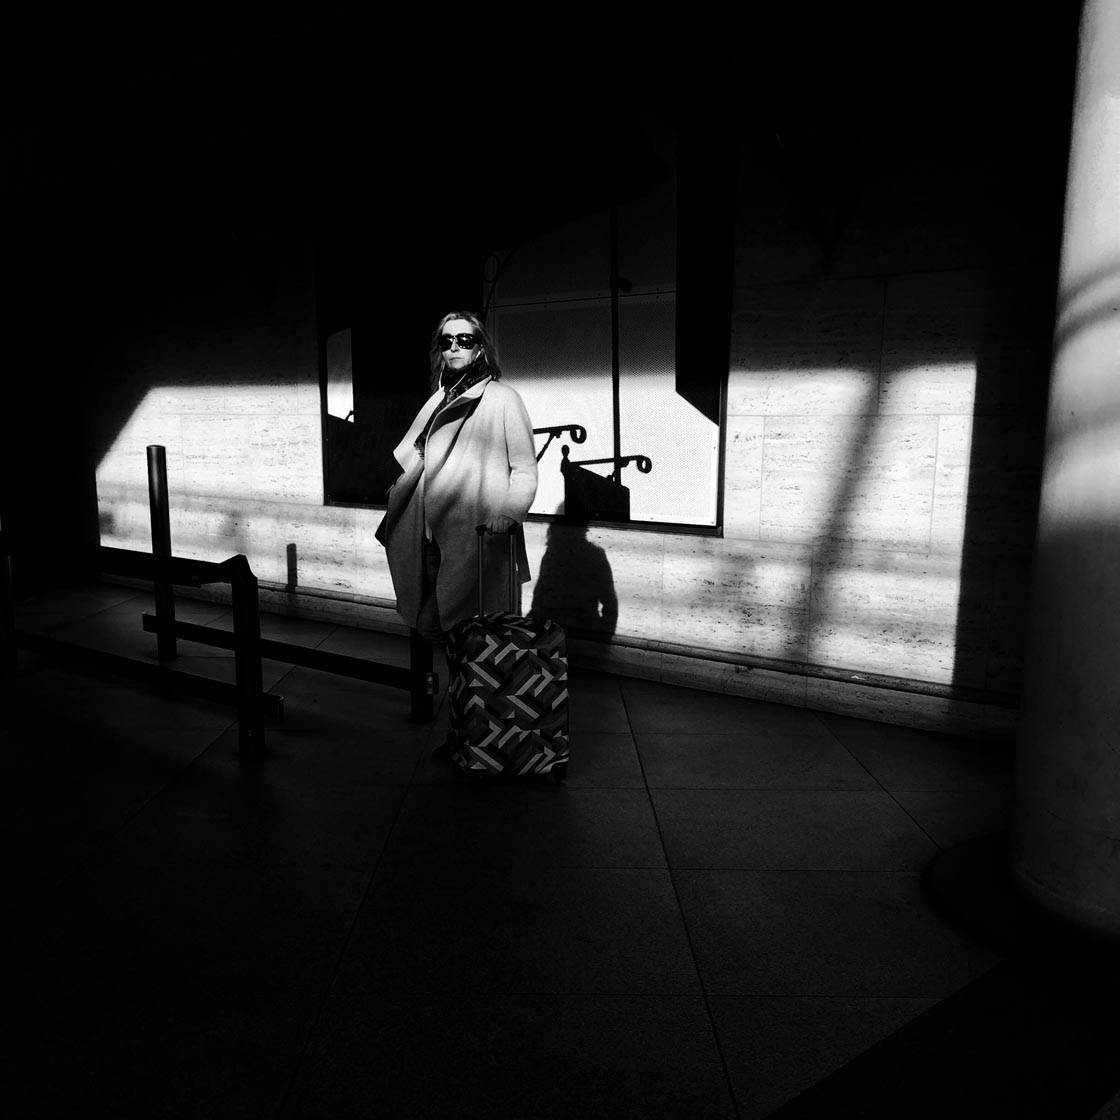 Harsh Light iPhone Street Photos 38